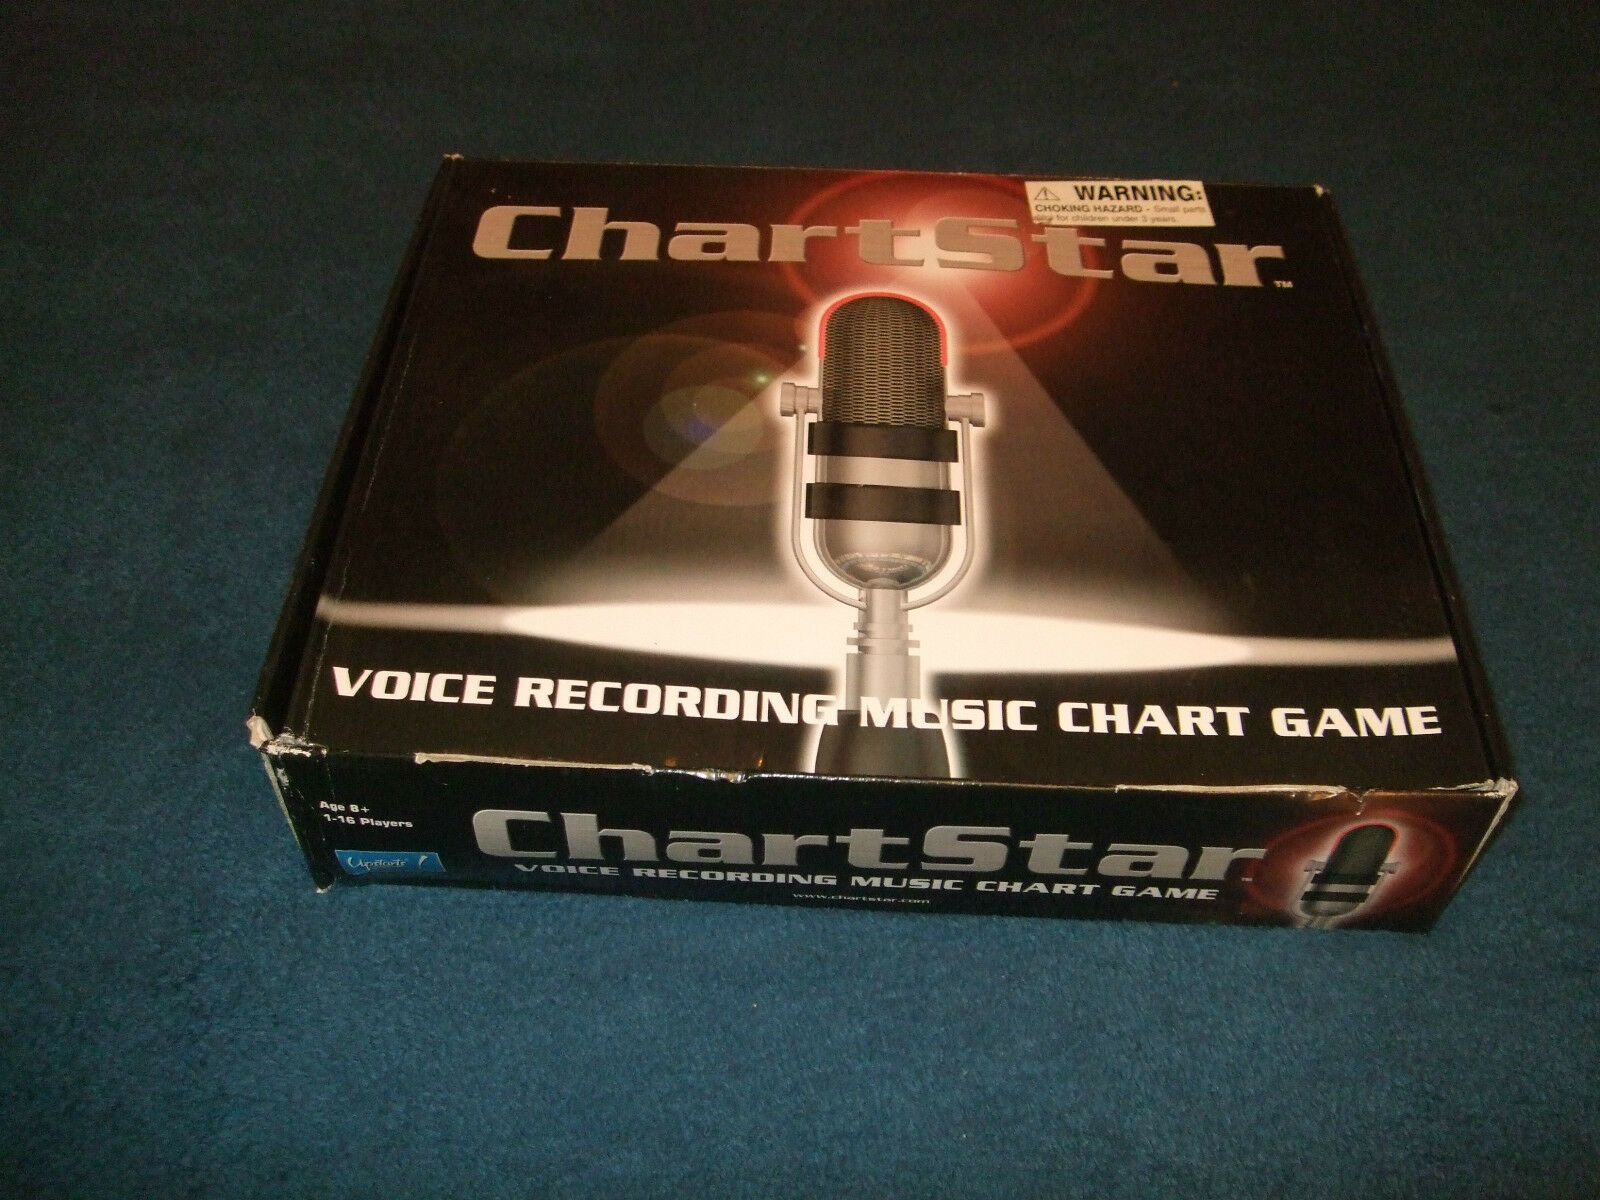 CHARTSTAR-THE FANTASTIC VOICE RECORDING MUSIC CHART GAME BY UPSTARTS